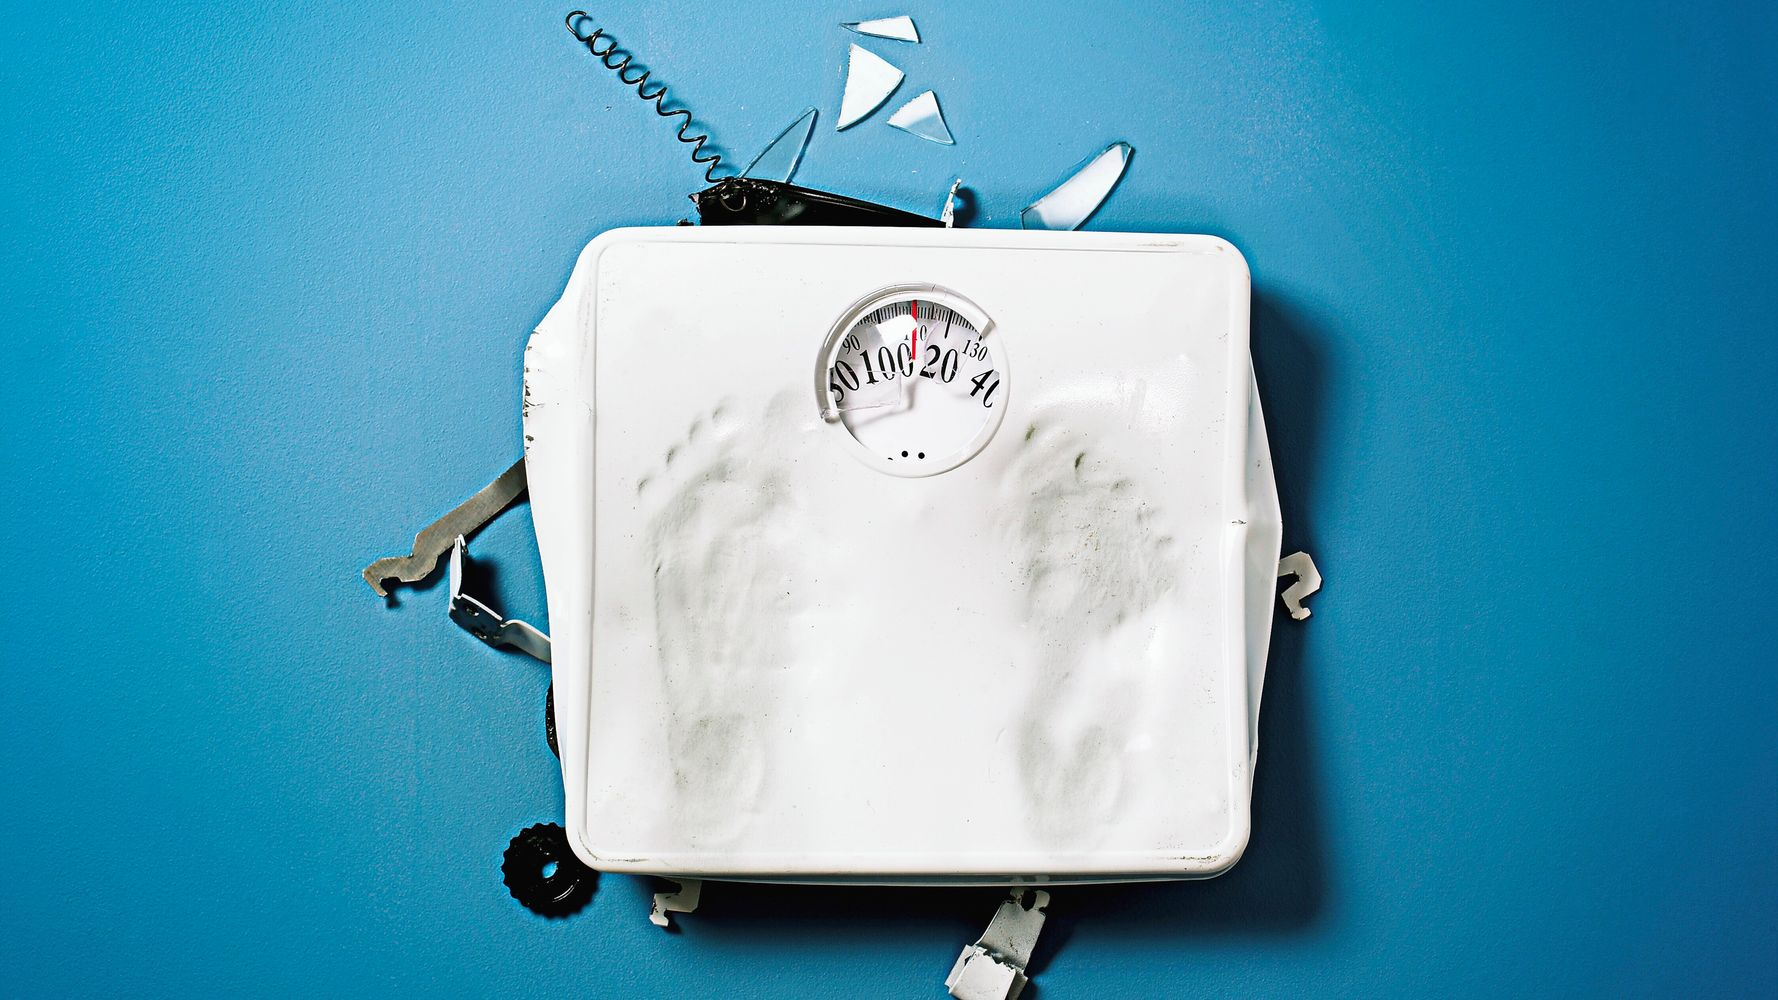 Weight loss diet The BMI Scale Is Racist And Useless. Here's How To Measure Health Instead. thumbnail